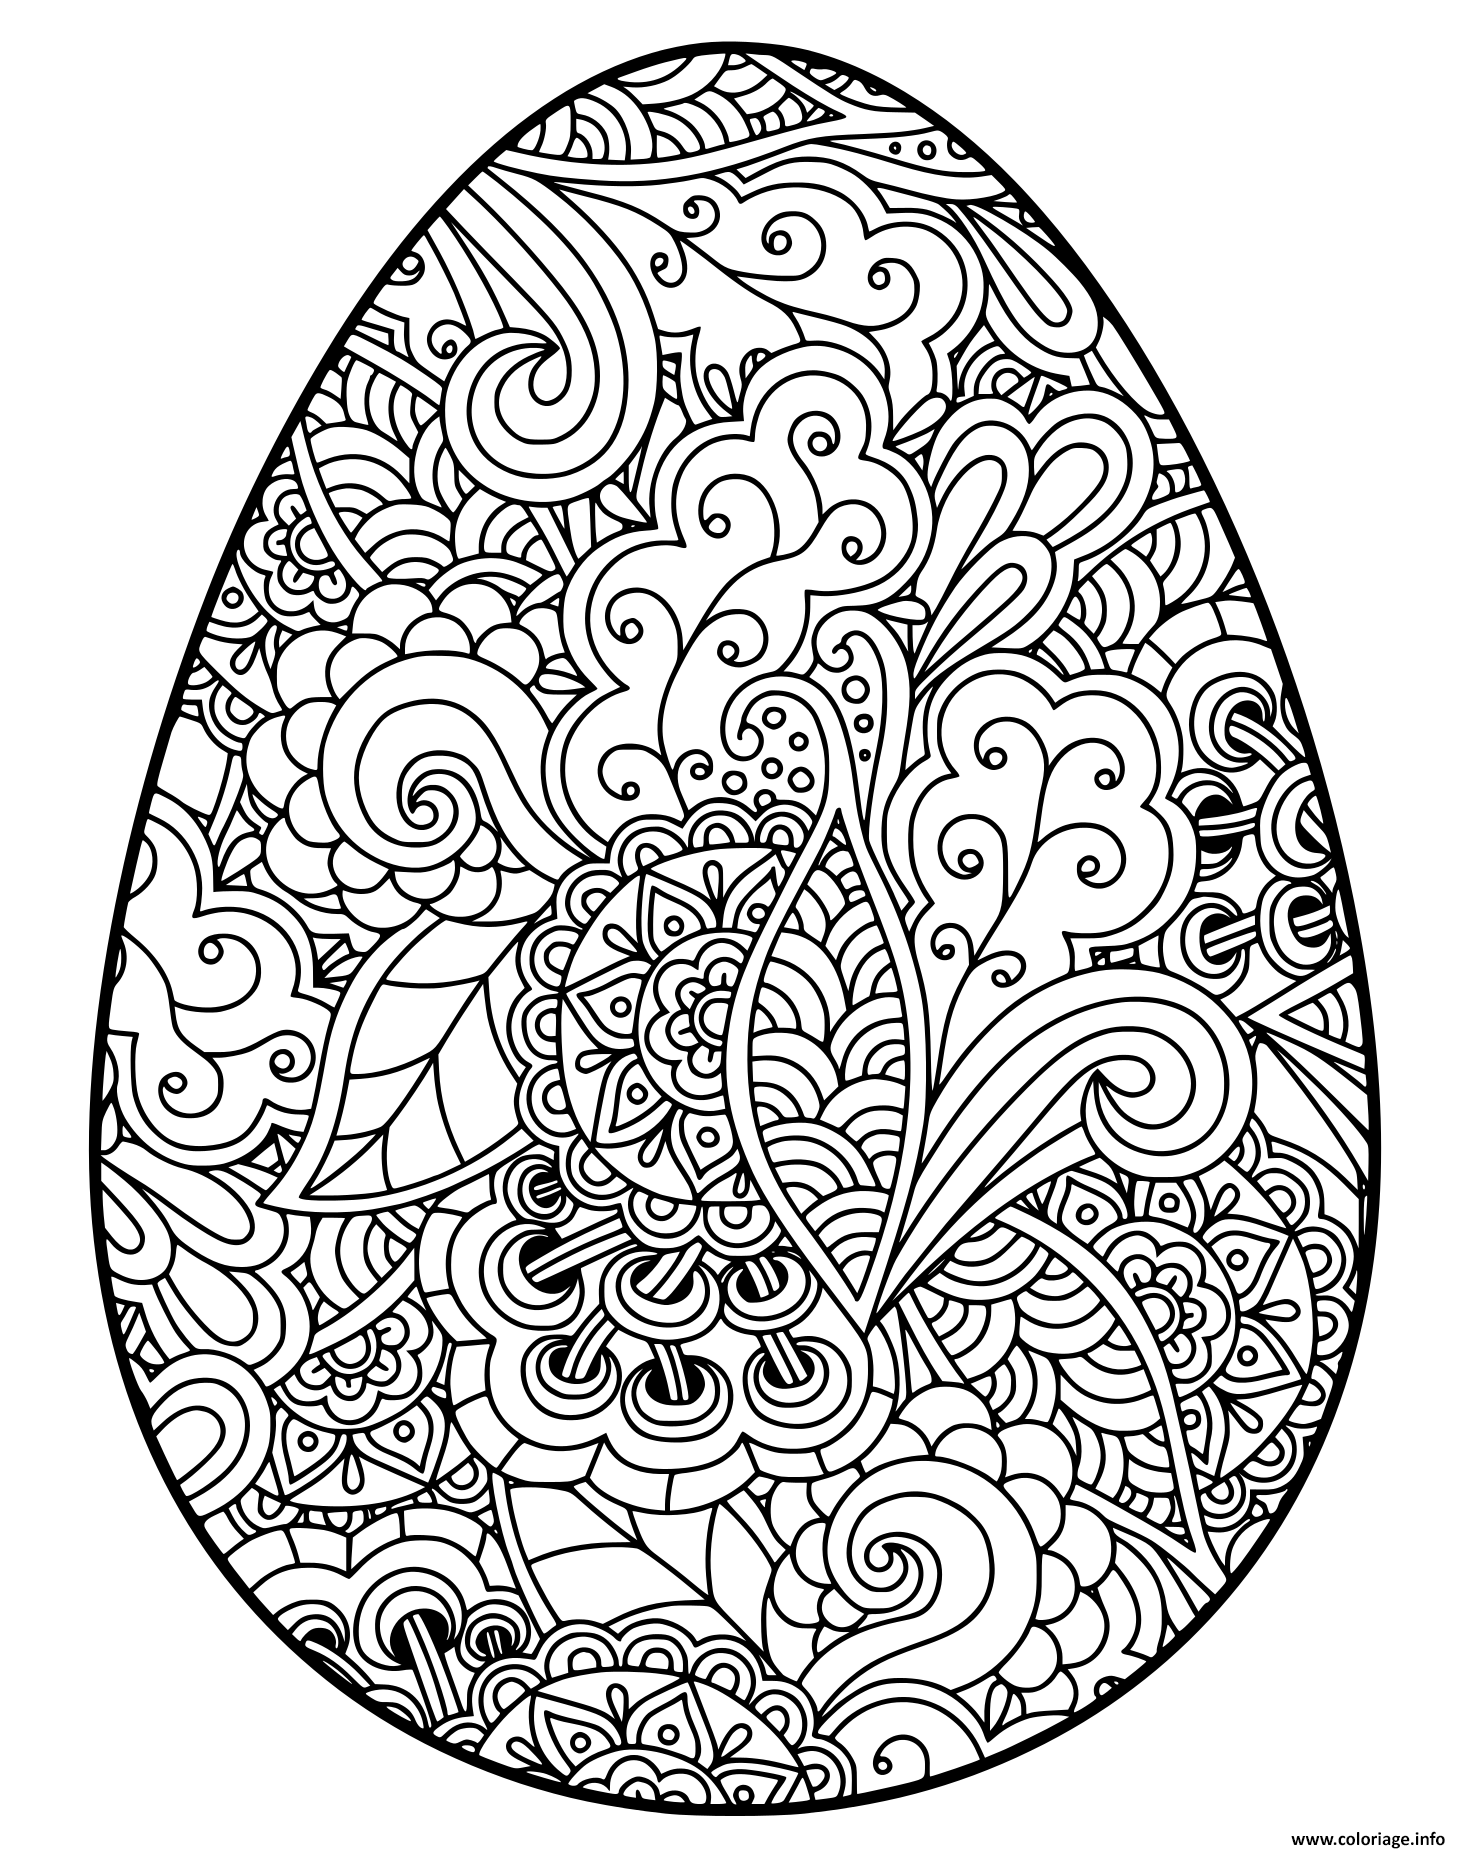 Coloriage Adulte Paques.Coloriage Easter Egg Oeuf Paque Adulte Dessin